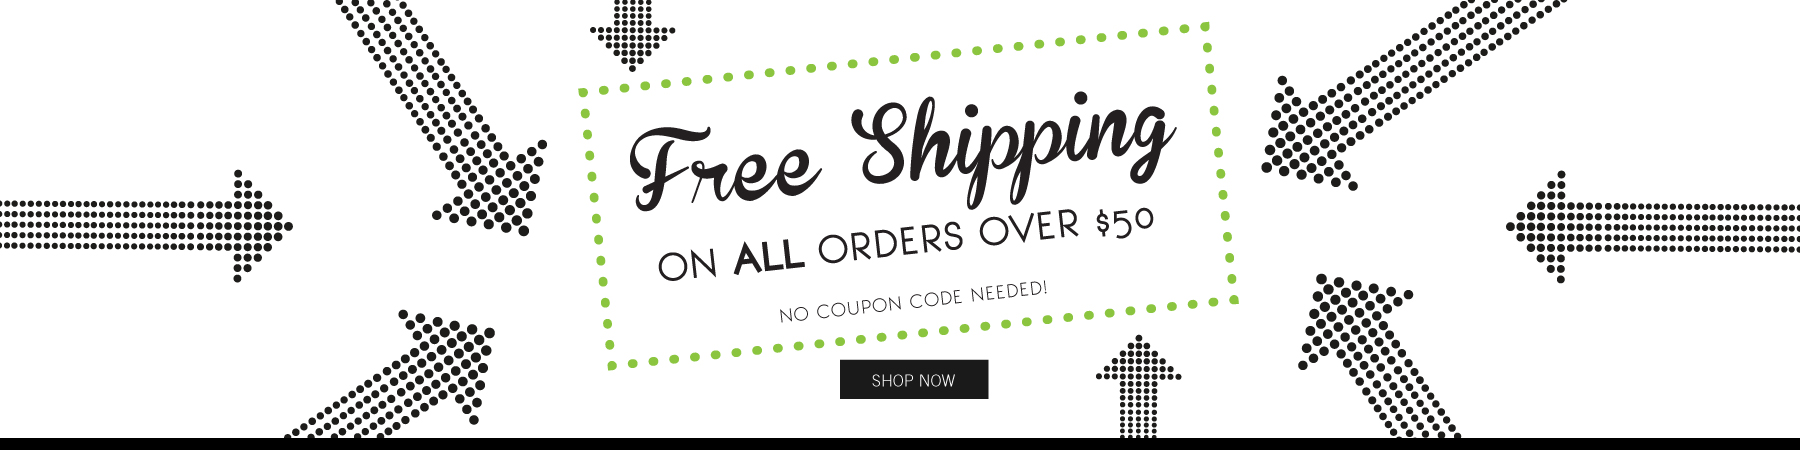 Free shipping on select orders over $50.